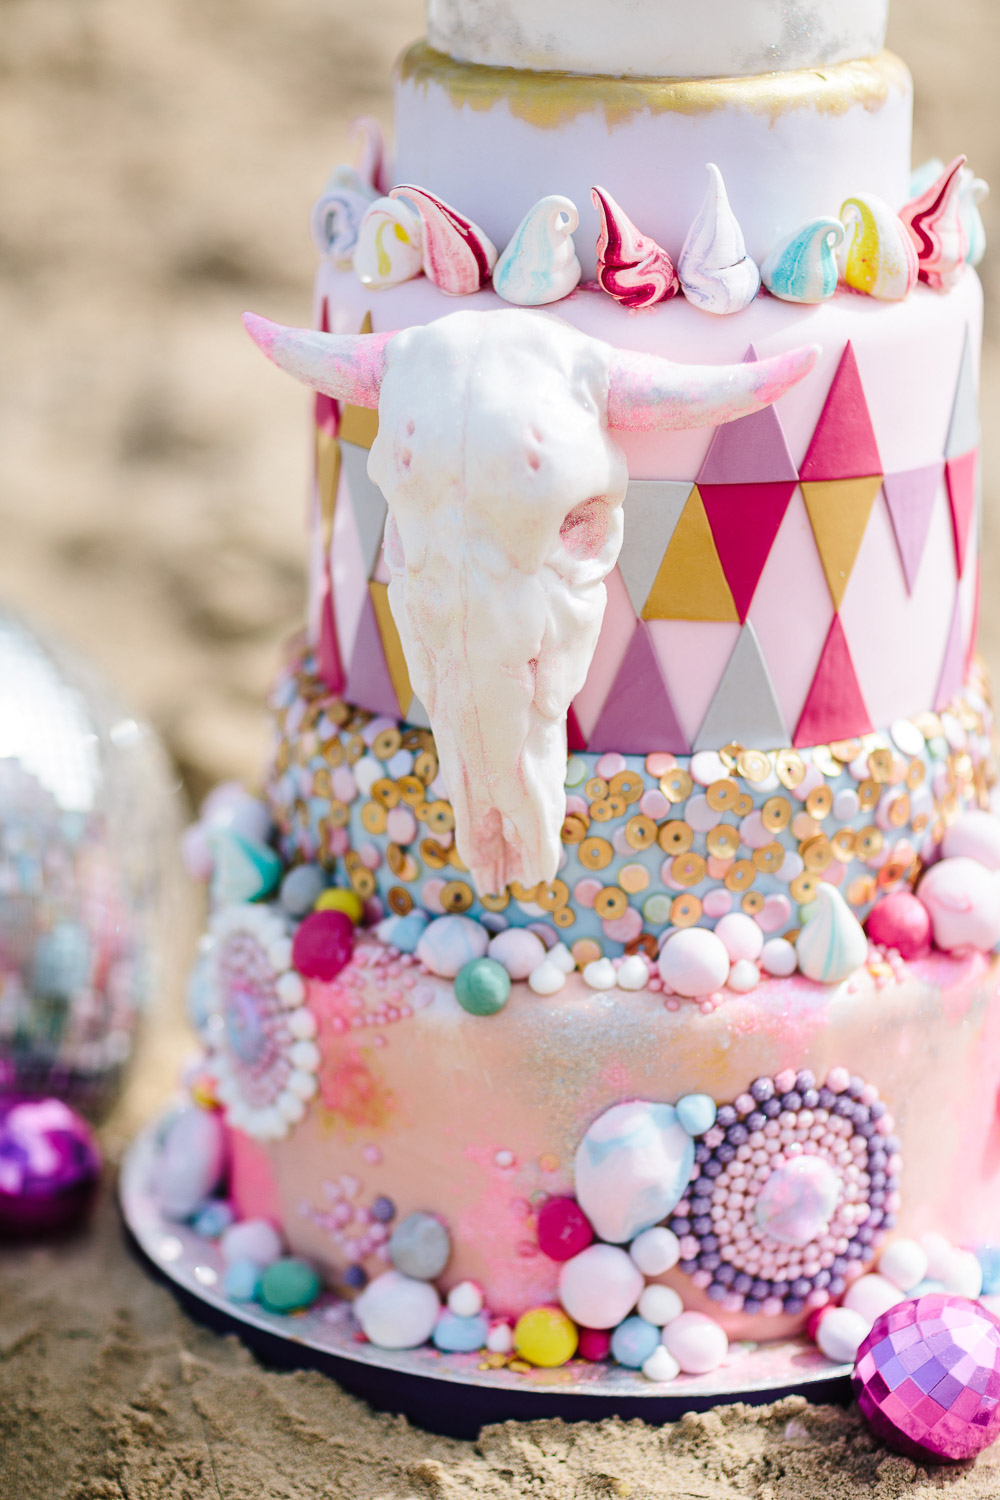 Tattooed Bakers, wedding cake, burning man cake, pink wedding cake, sequin wedding cake